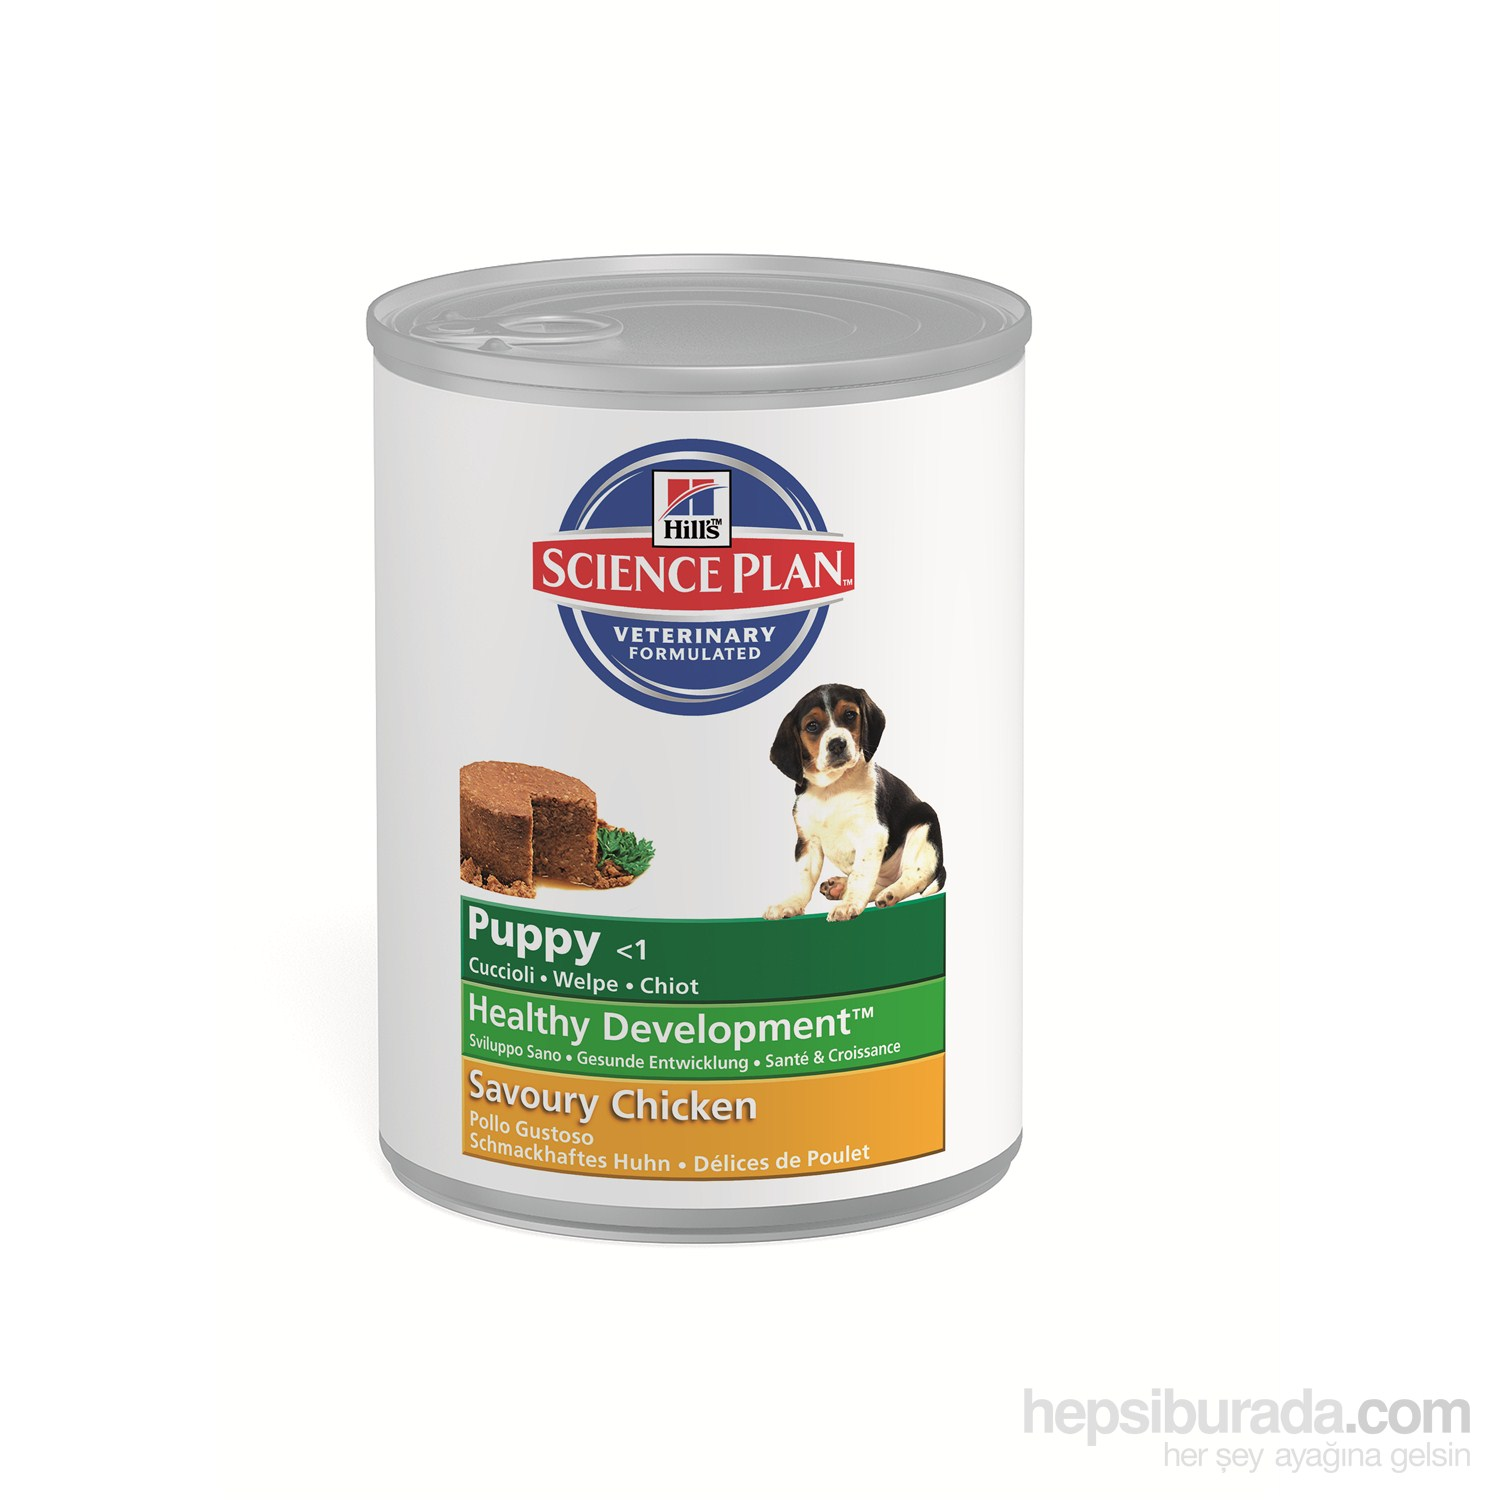 Hill's Science Plan Tavuklu Yavru Köpek Konserve Maması 370 Gr (Puppy Healthy Development Savory with Chicken)